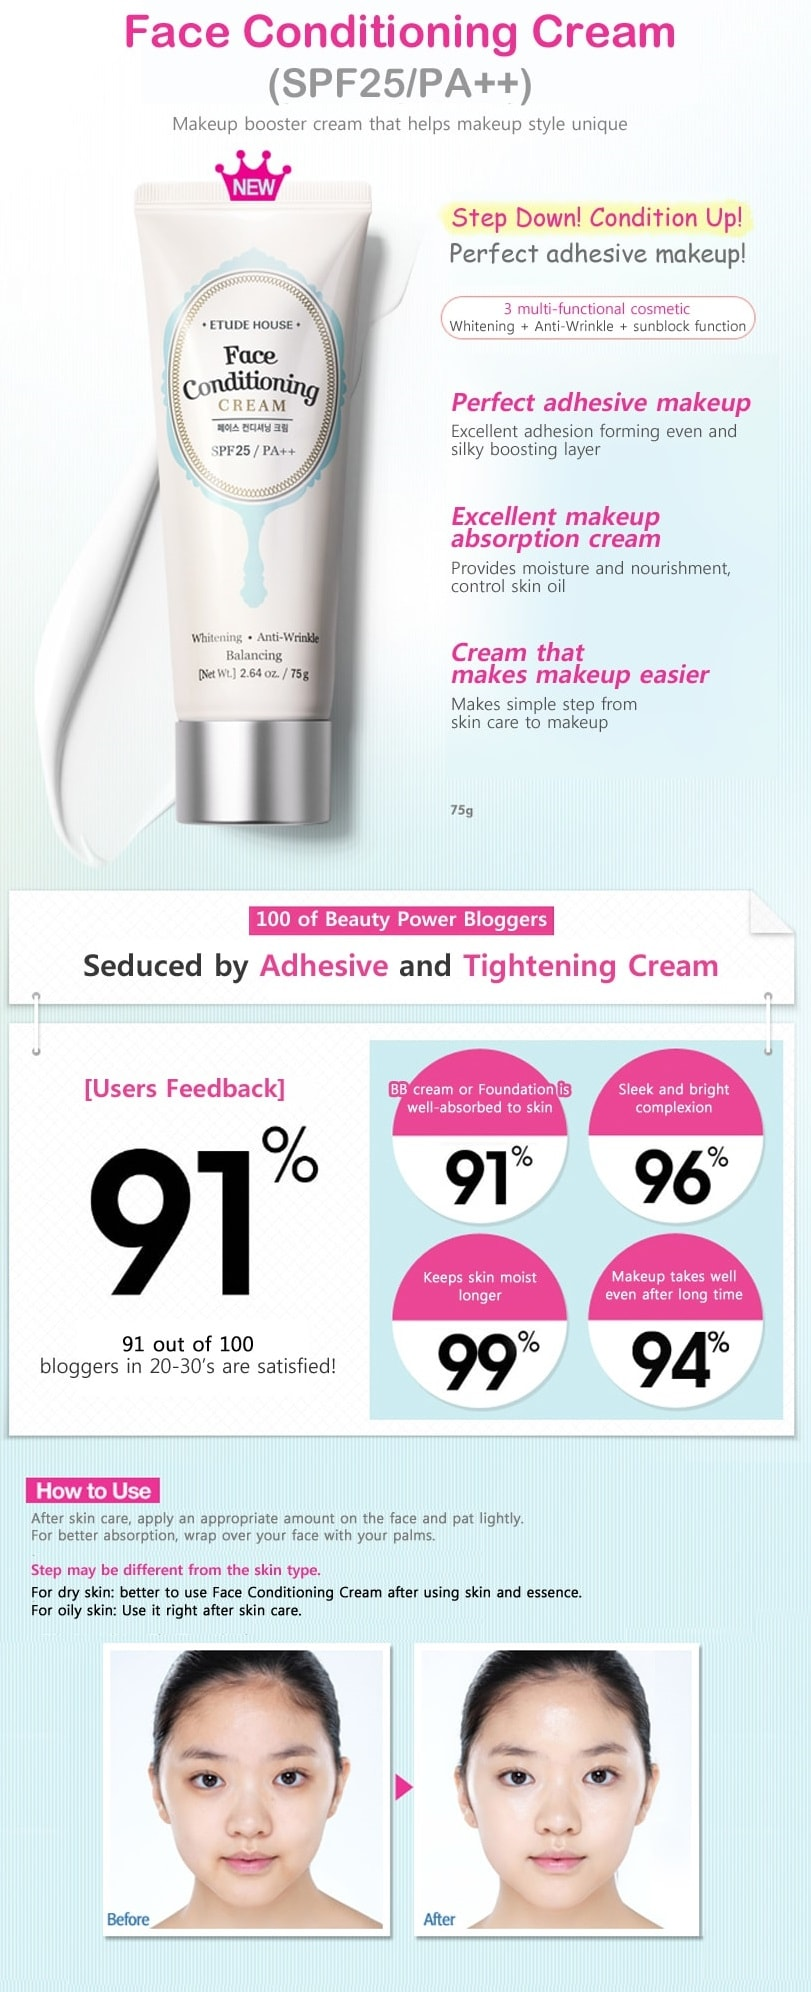 Etude House Face Conditioning Cream 75g SPF25 / PA ++ (75g)